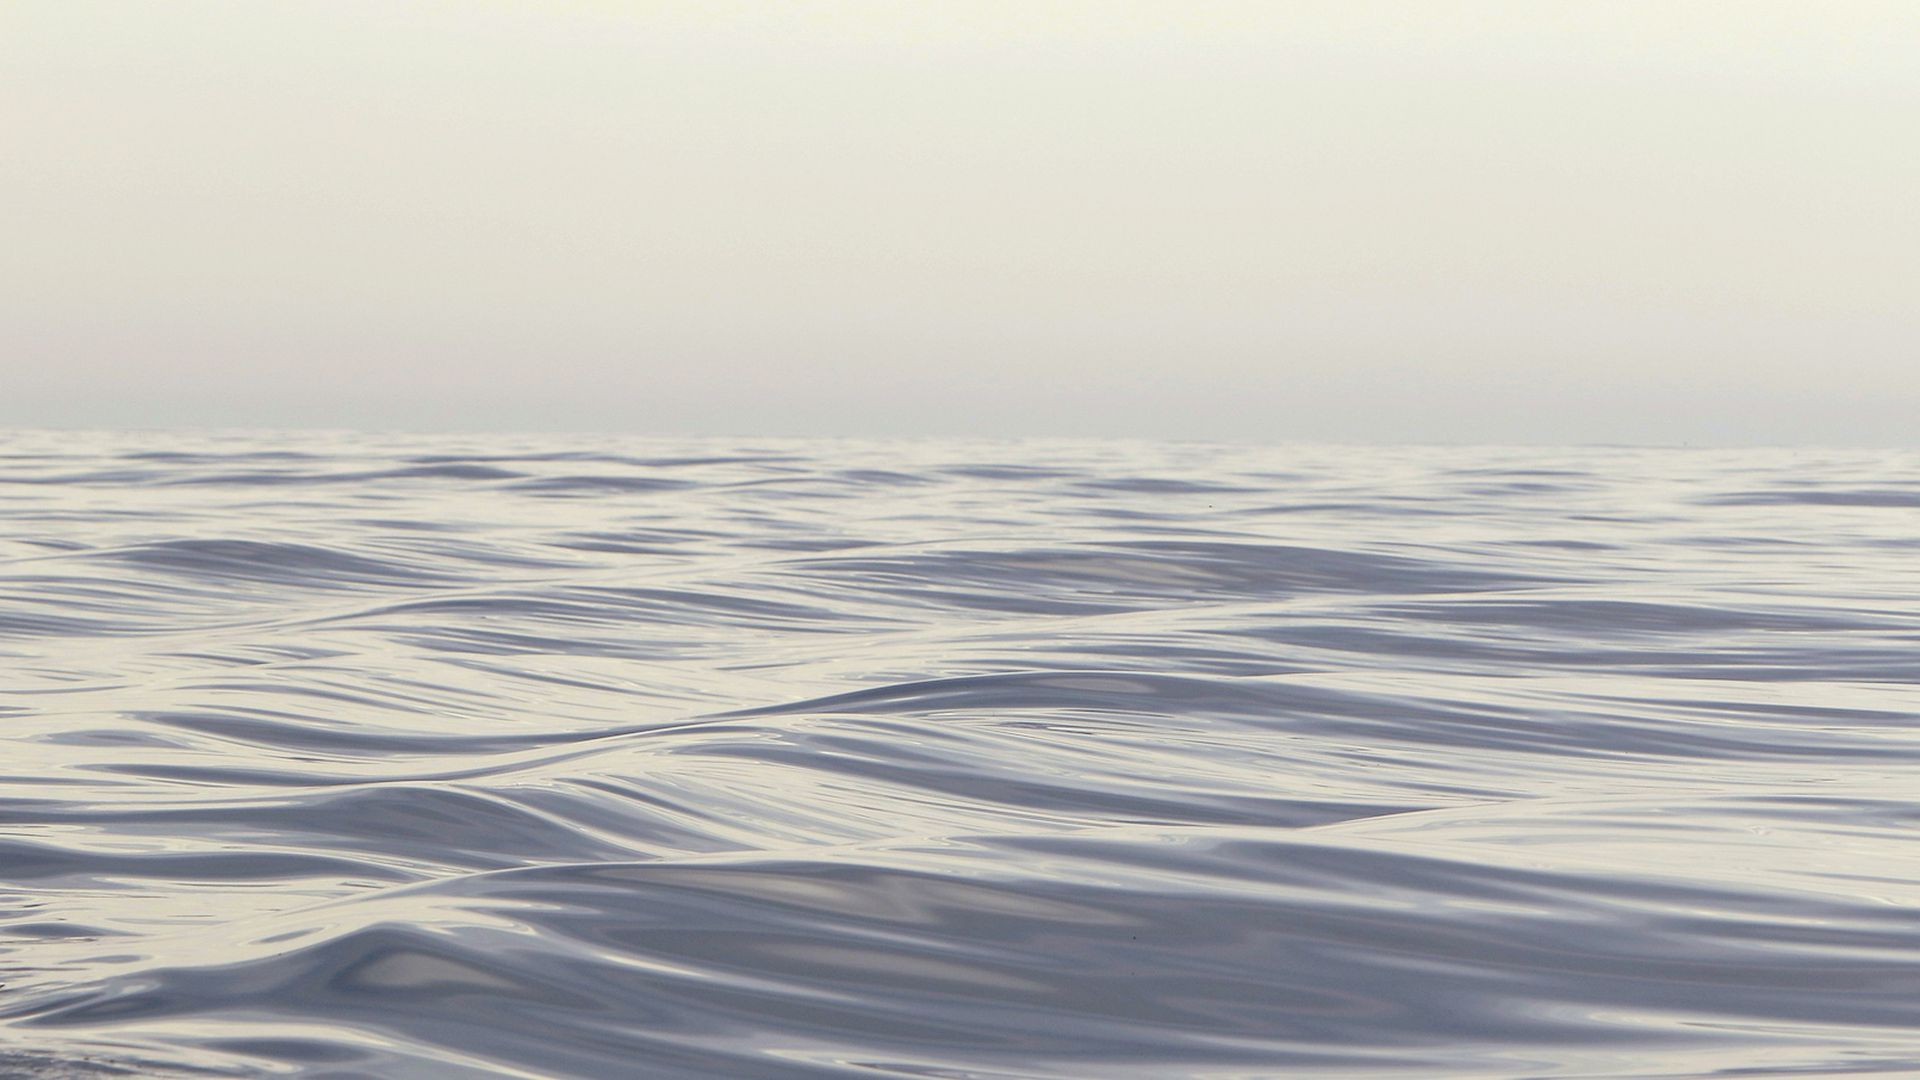 Waves in the Bay of Fundy